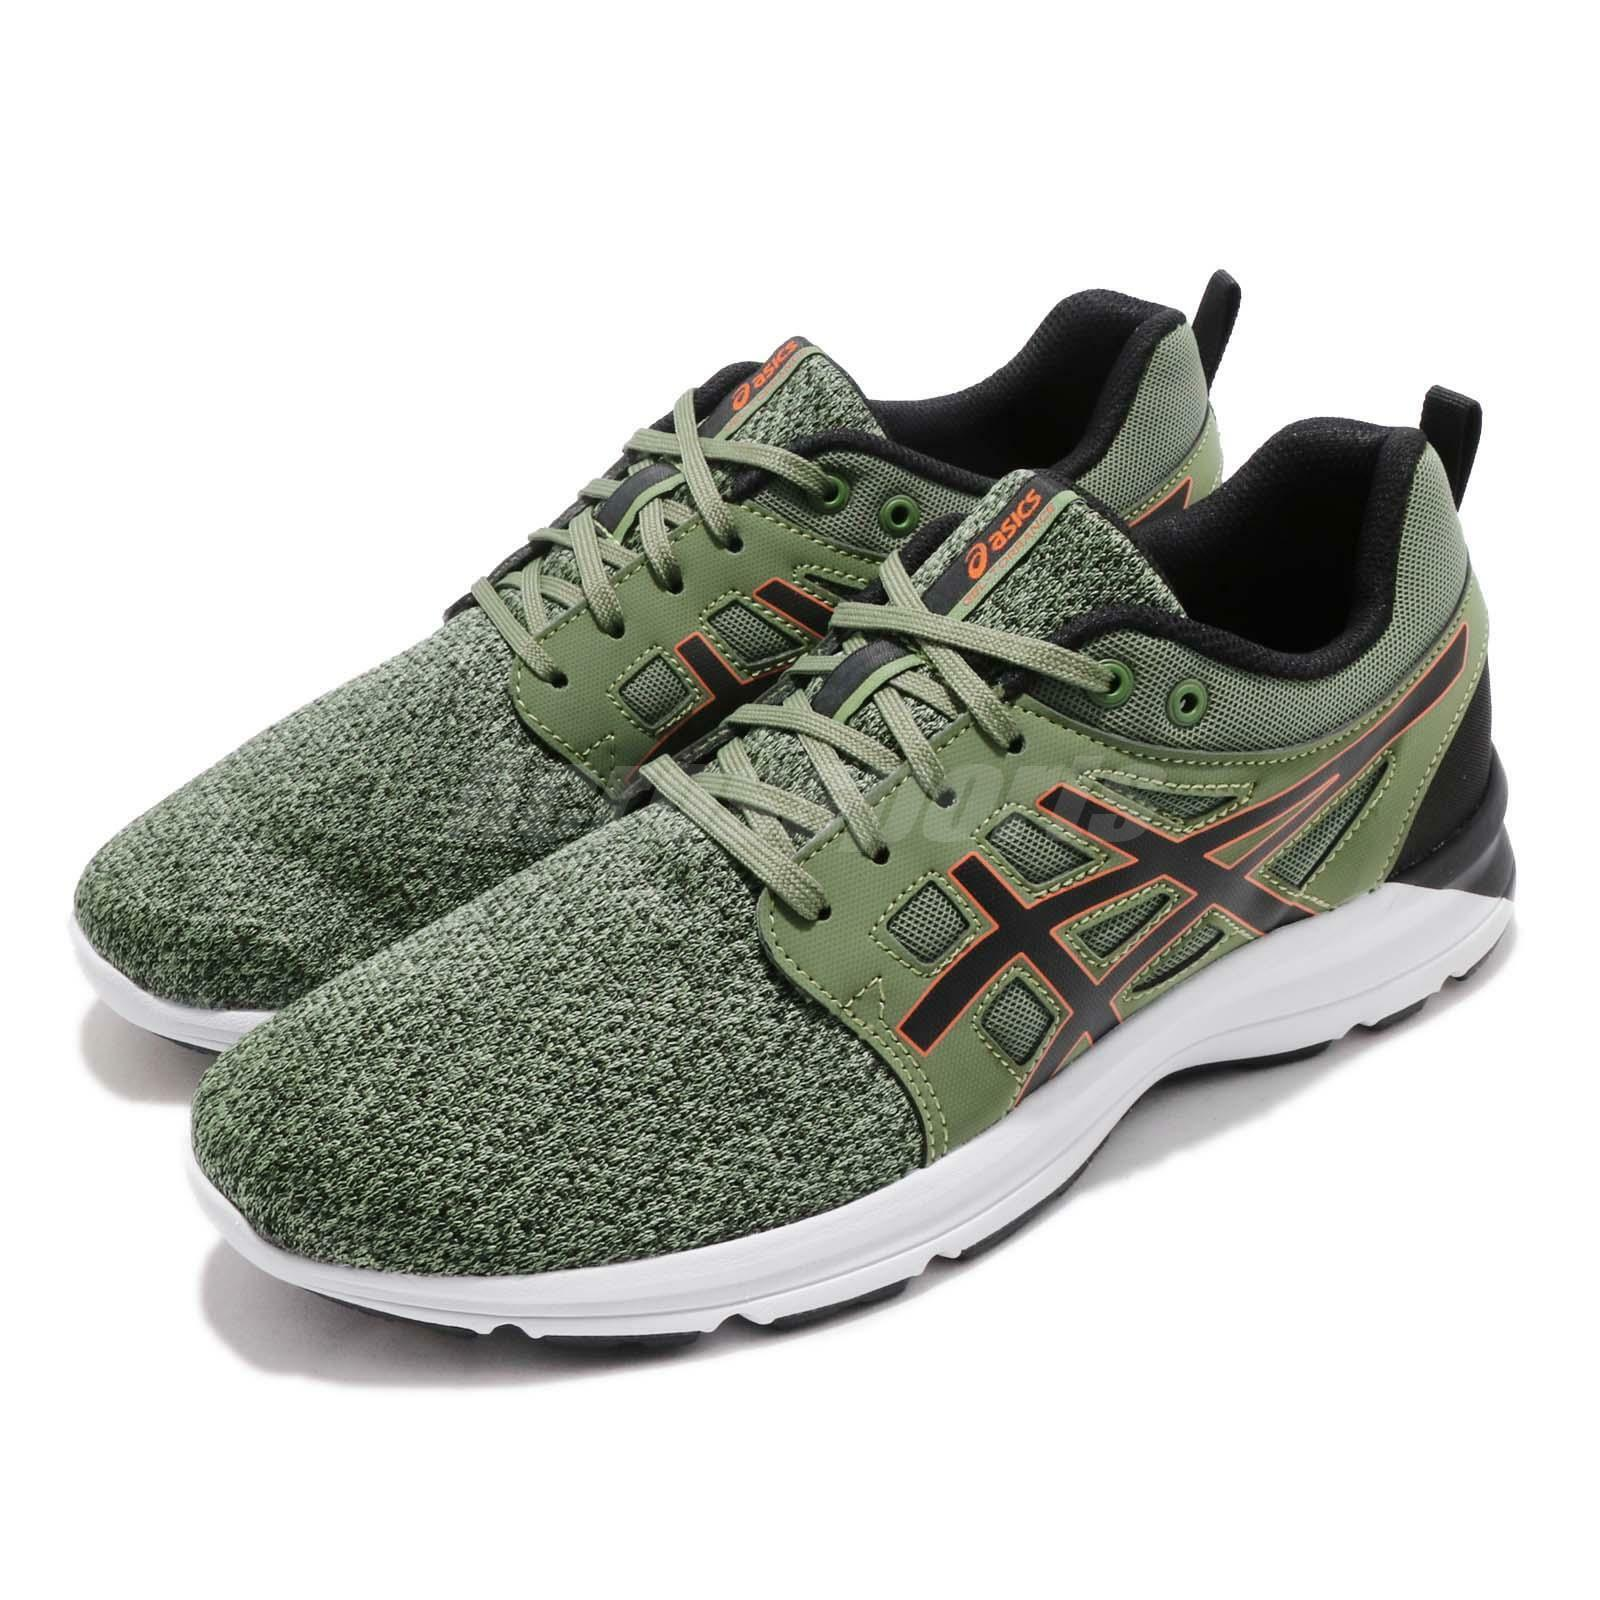 sale retailer 3db54 a5339 Asics Gel-Torrance Cedar Green Black Black Black Running Shoes Sneakers  1021A049-300 fa22dc